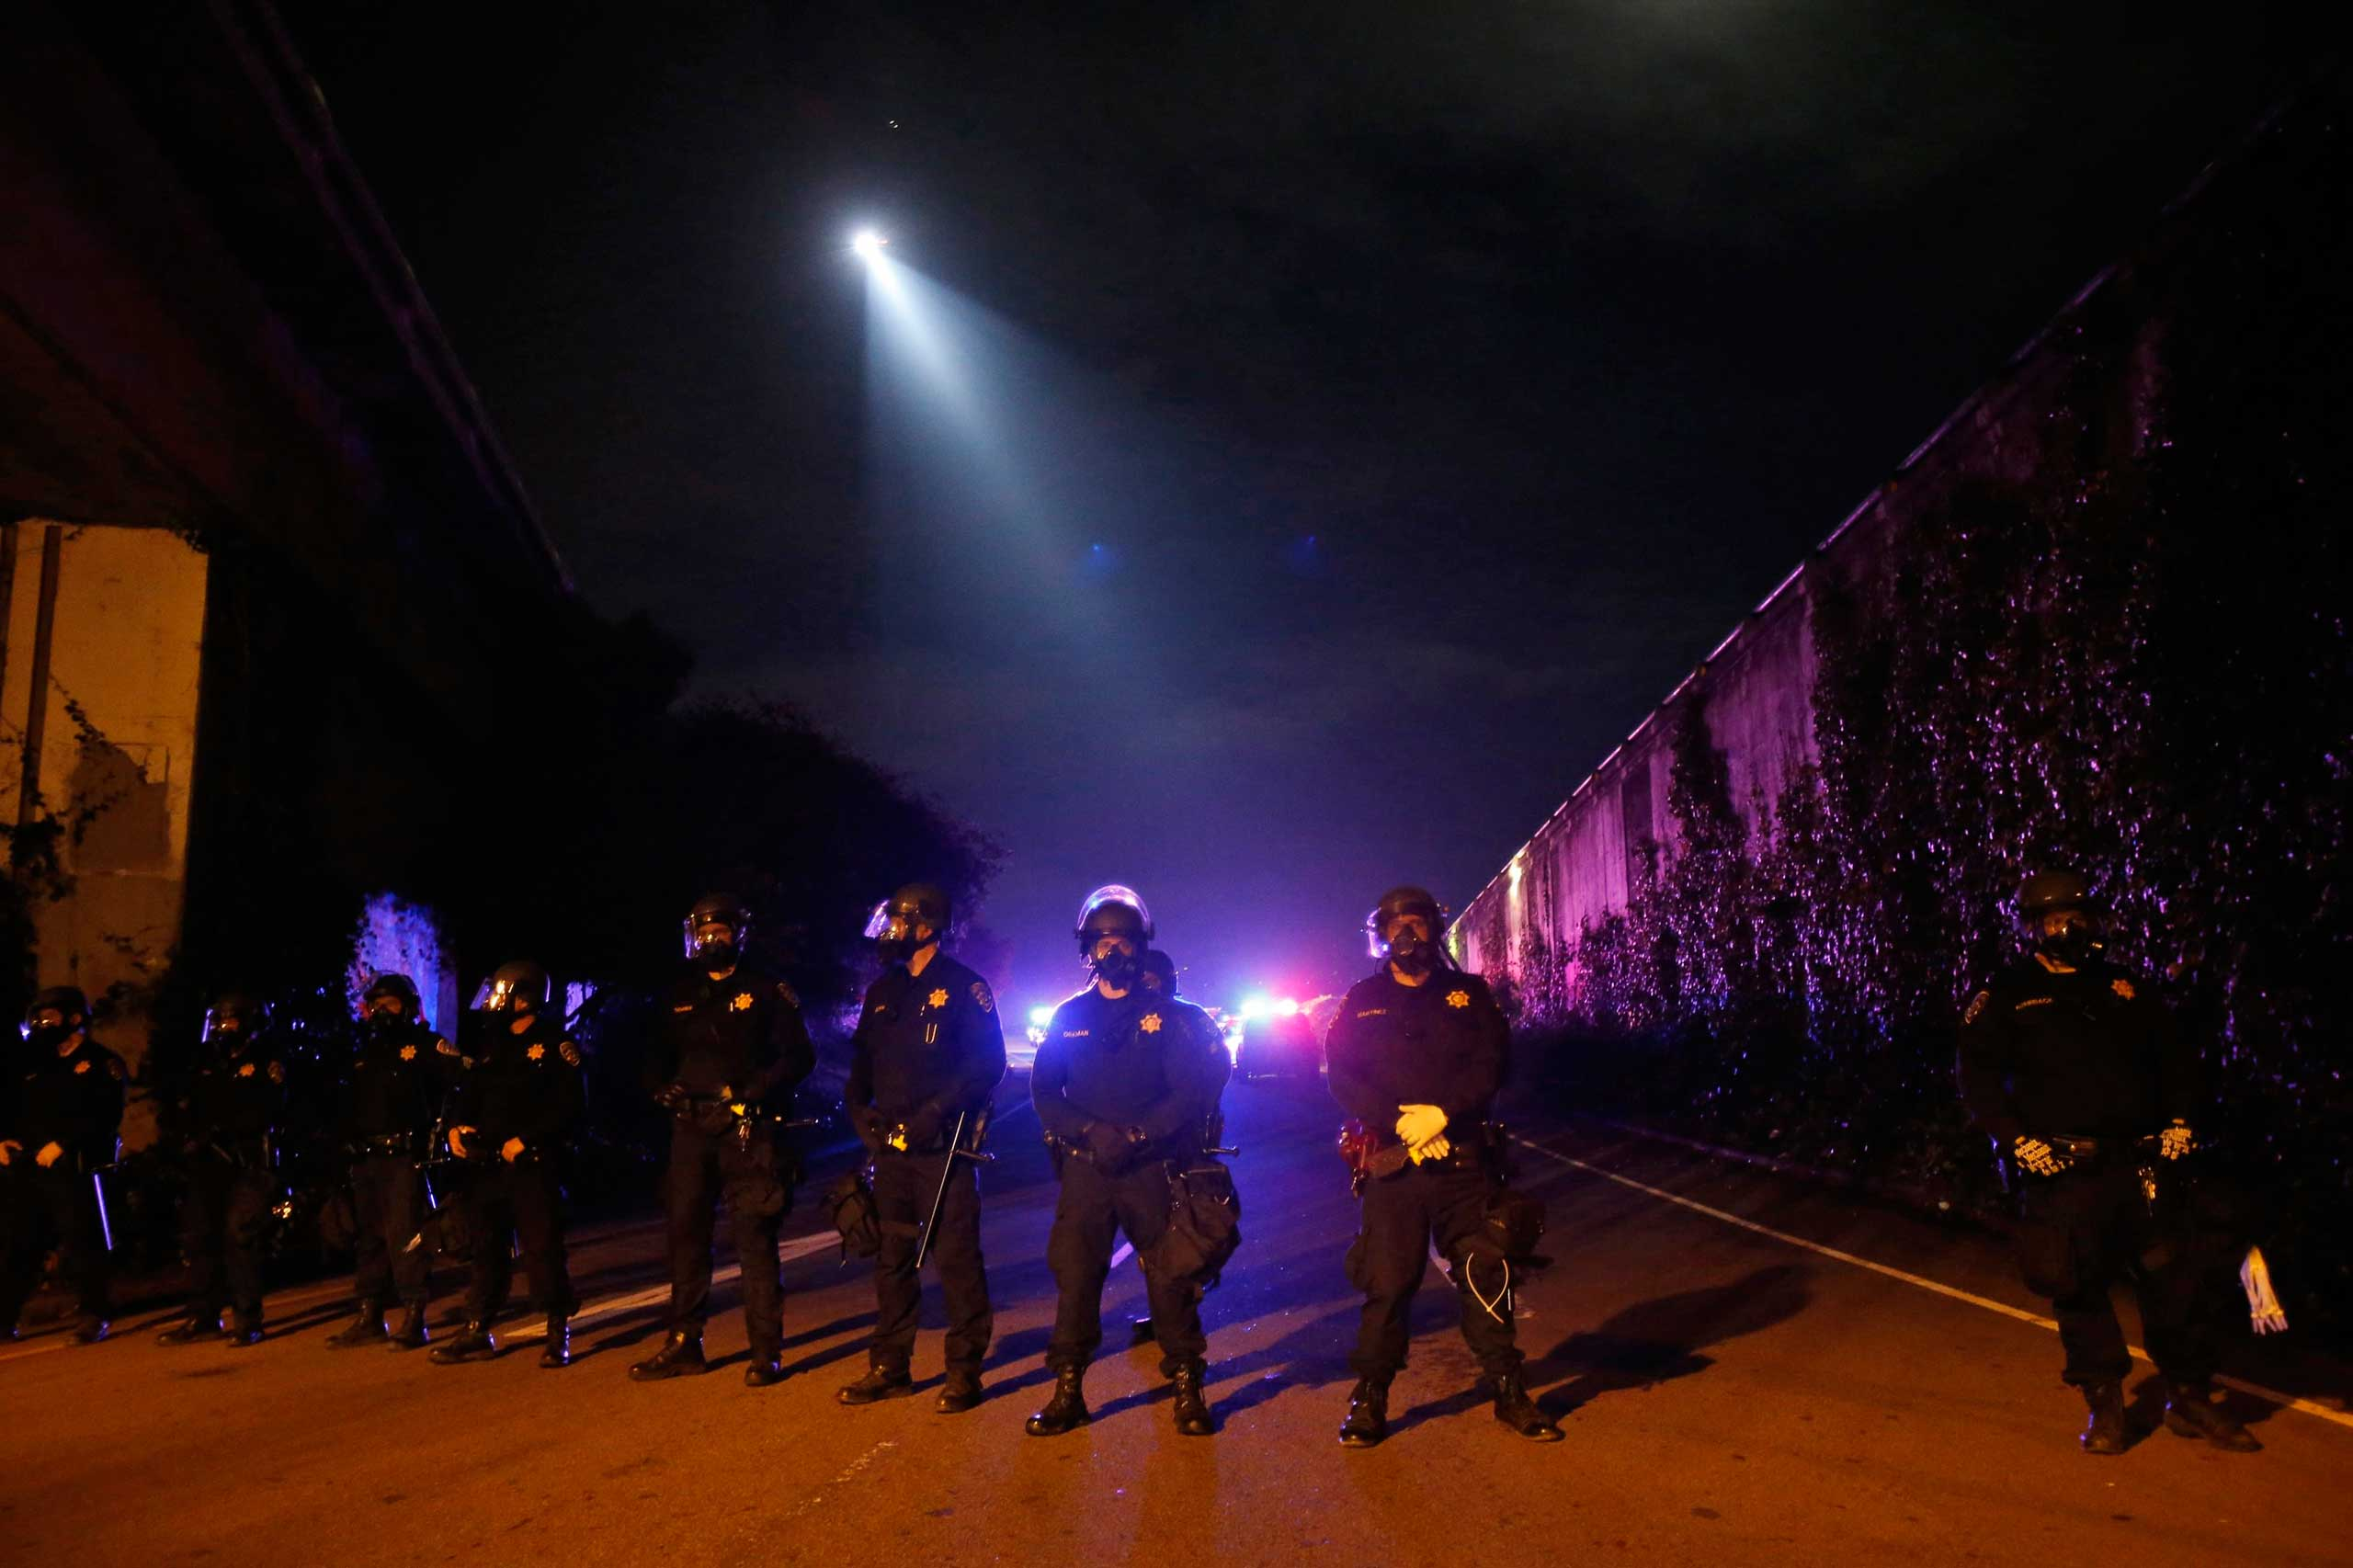 Members of the California Highway Patrol form a line on a freeway entrance after protesters ran onto Highway 24 in Berkeley, Calif. on Dec. 7, 2014.